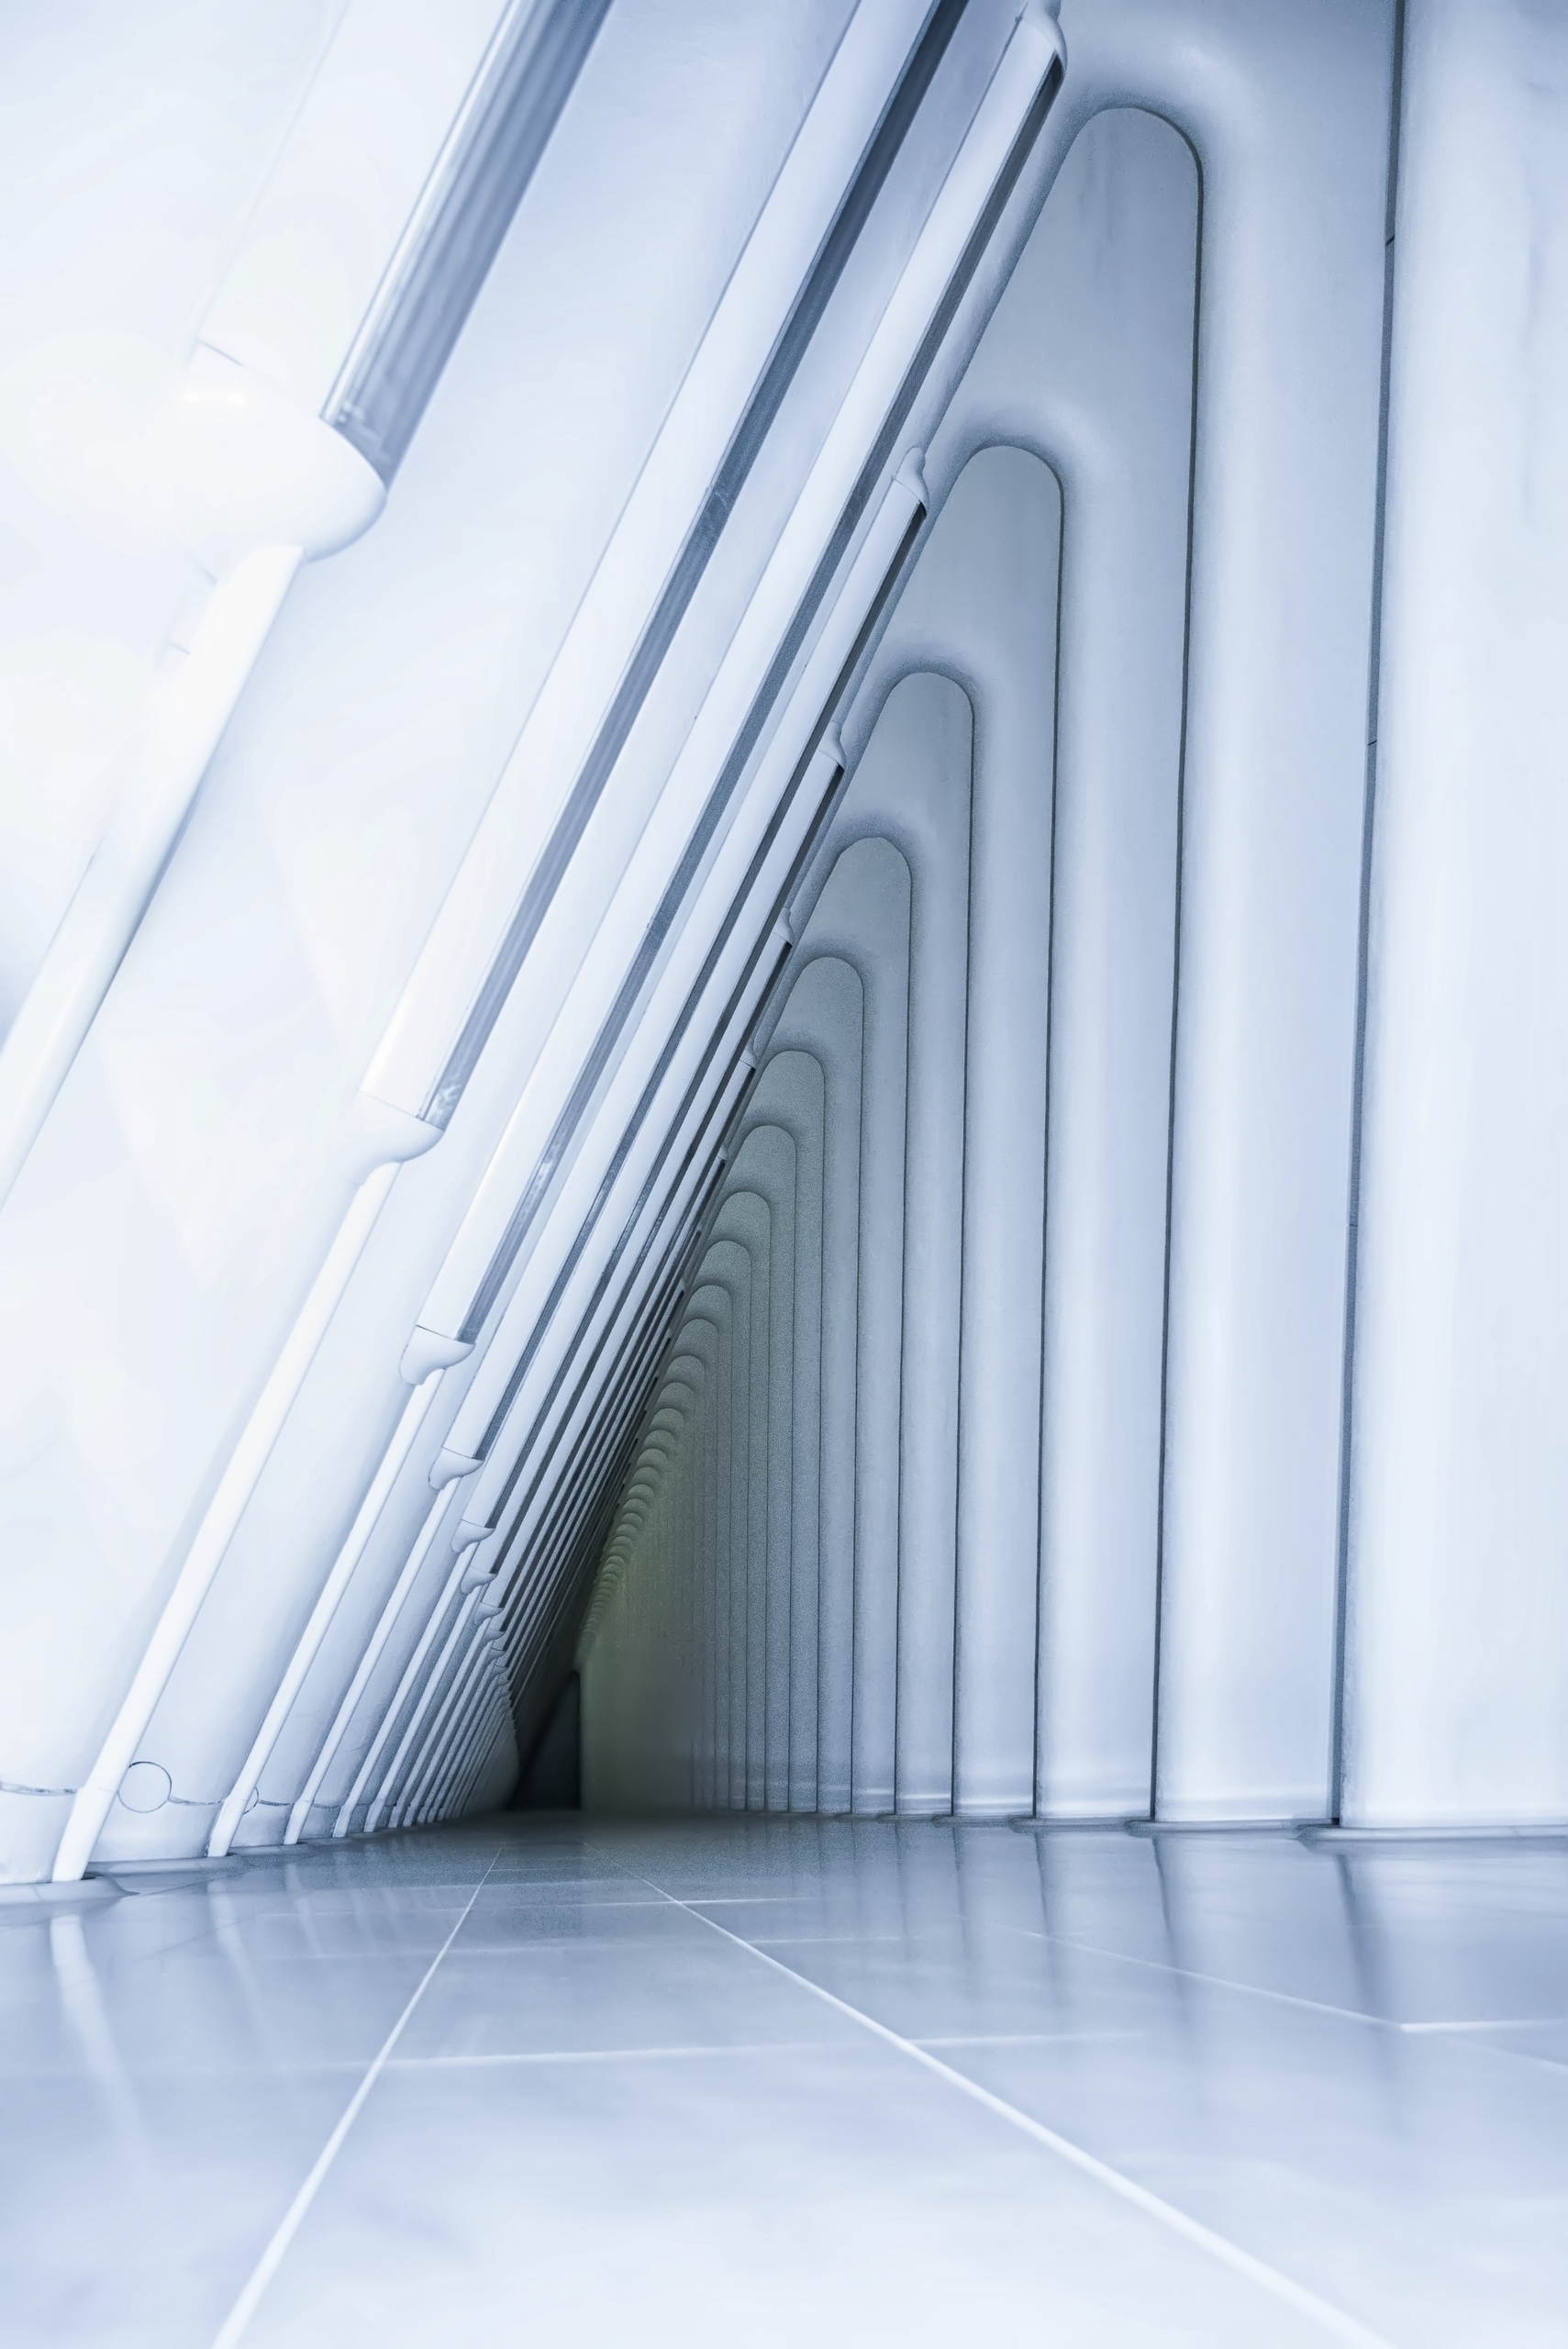 abstract, architecture, arch - hoovertung   ello